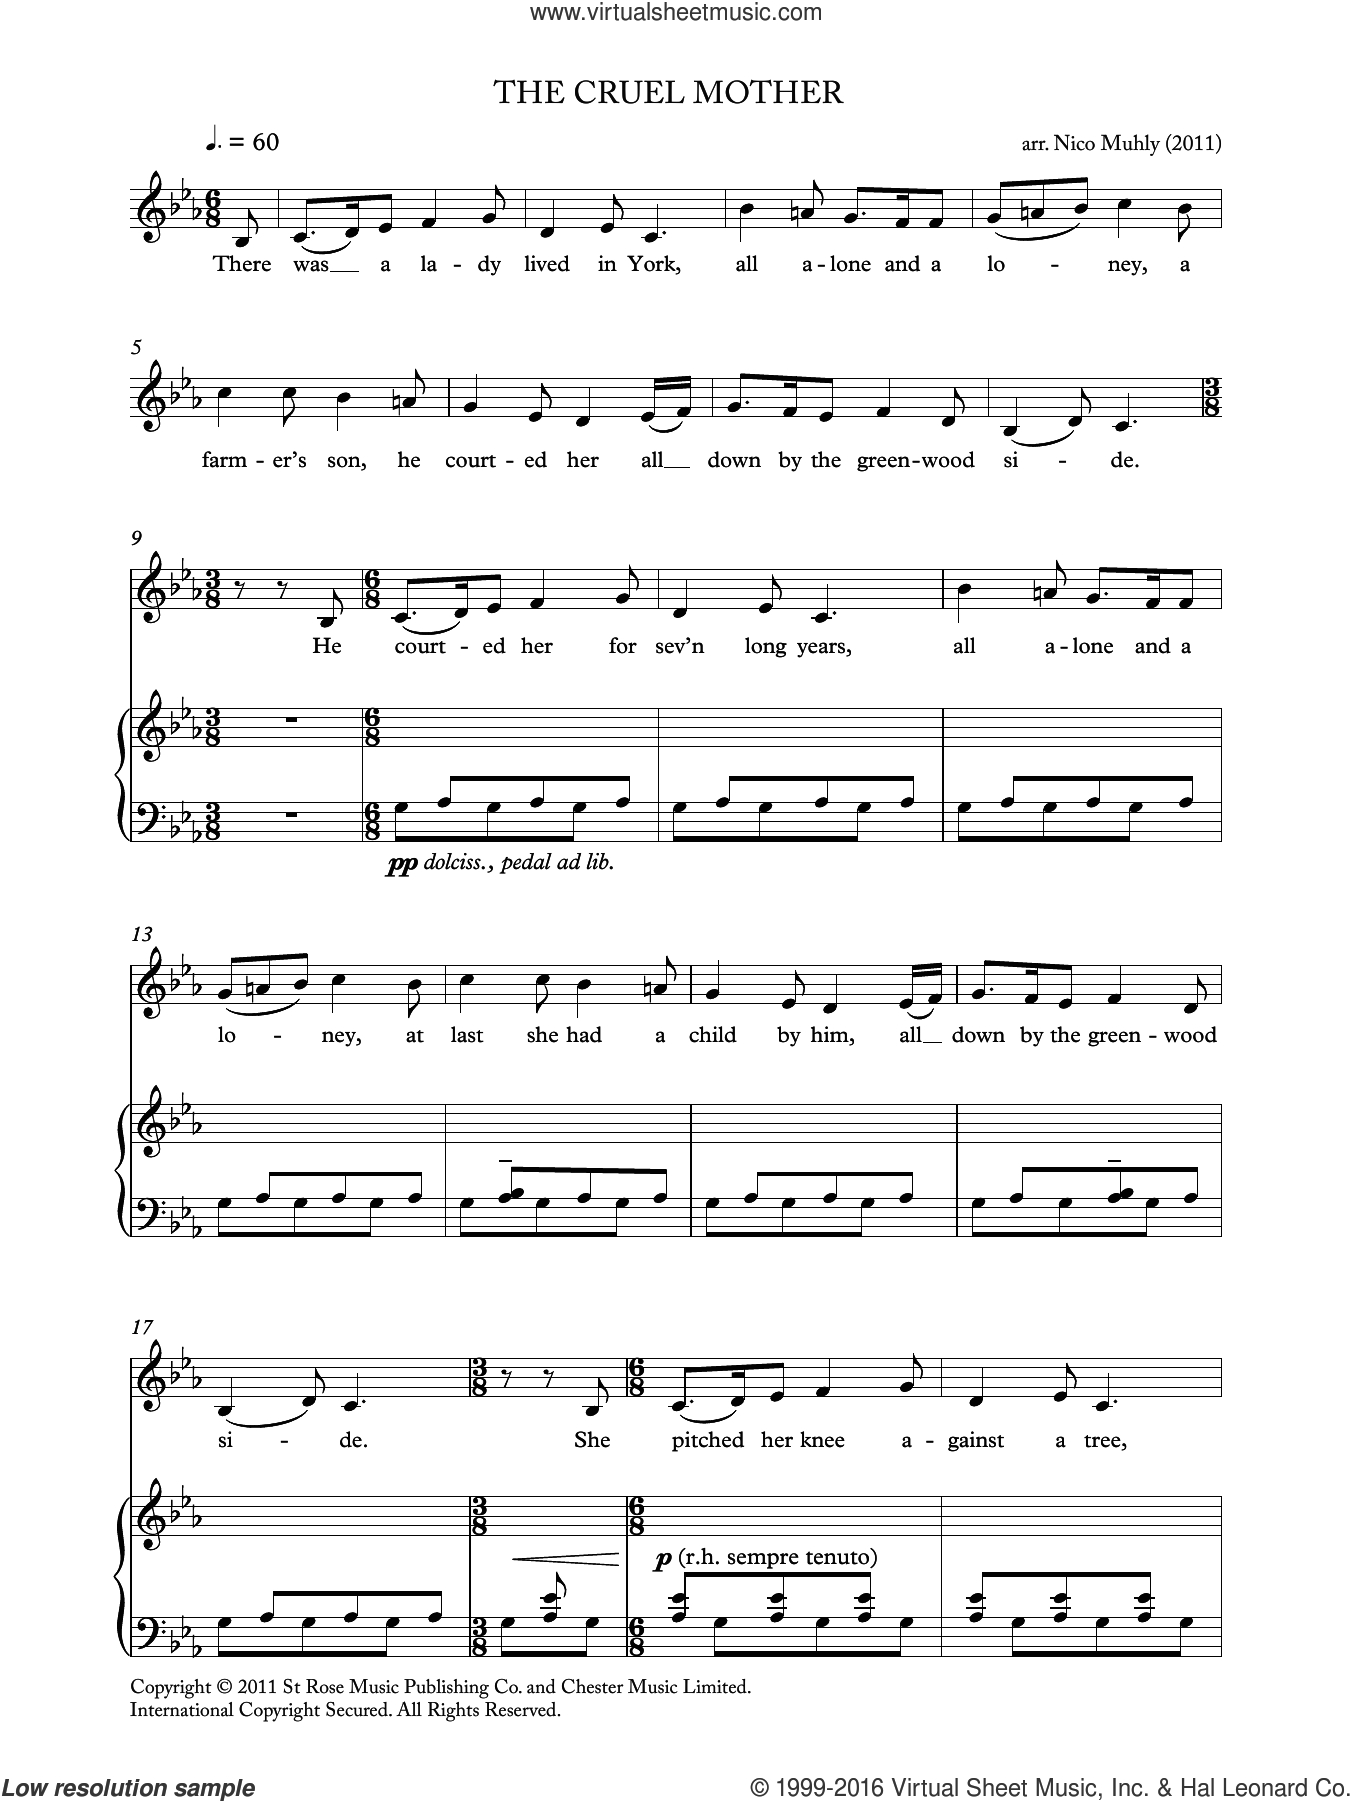 The Cruel Mother (from 'Four Traditional Songs') sheet music for voice, piano or guitar by Nico Muhly, classical score, intermediate skill level